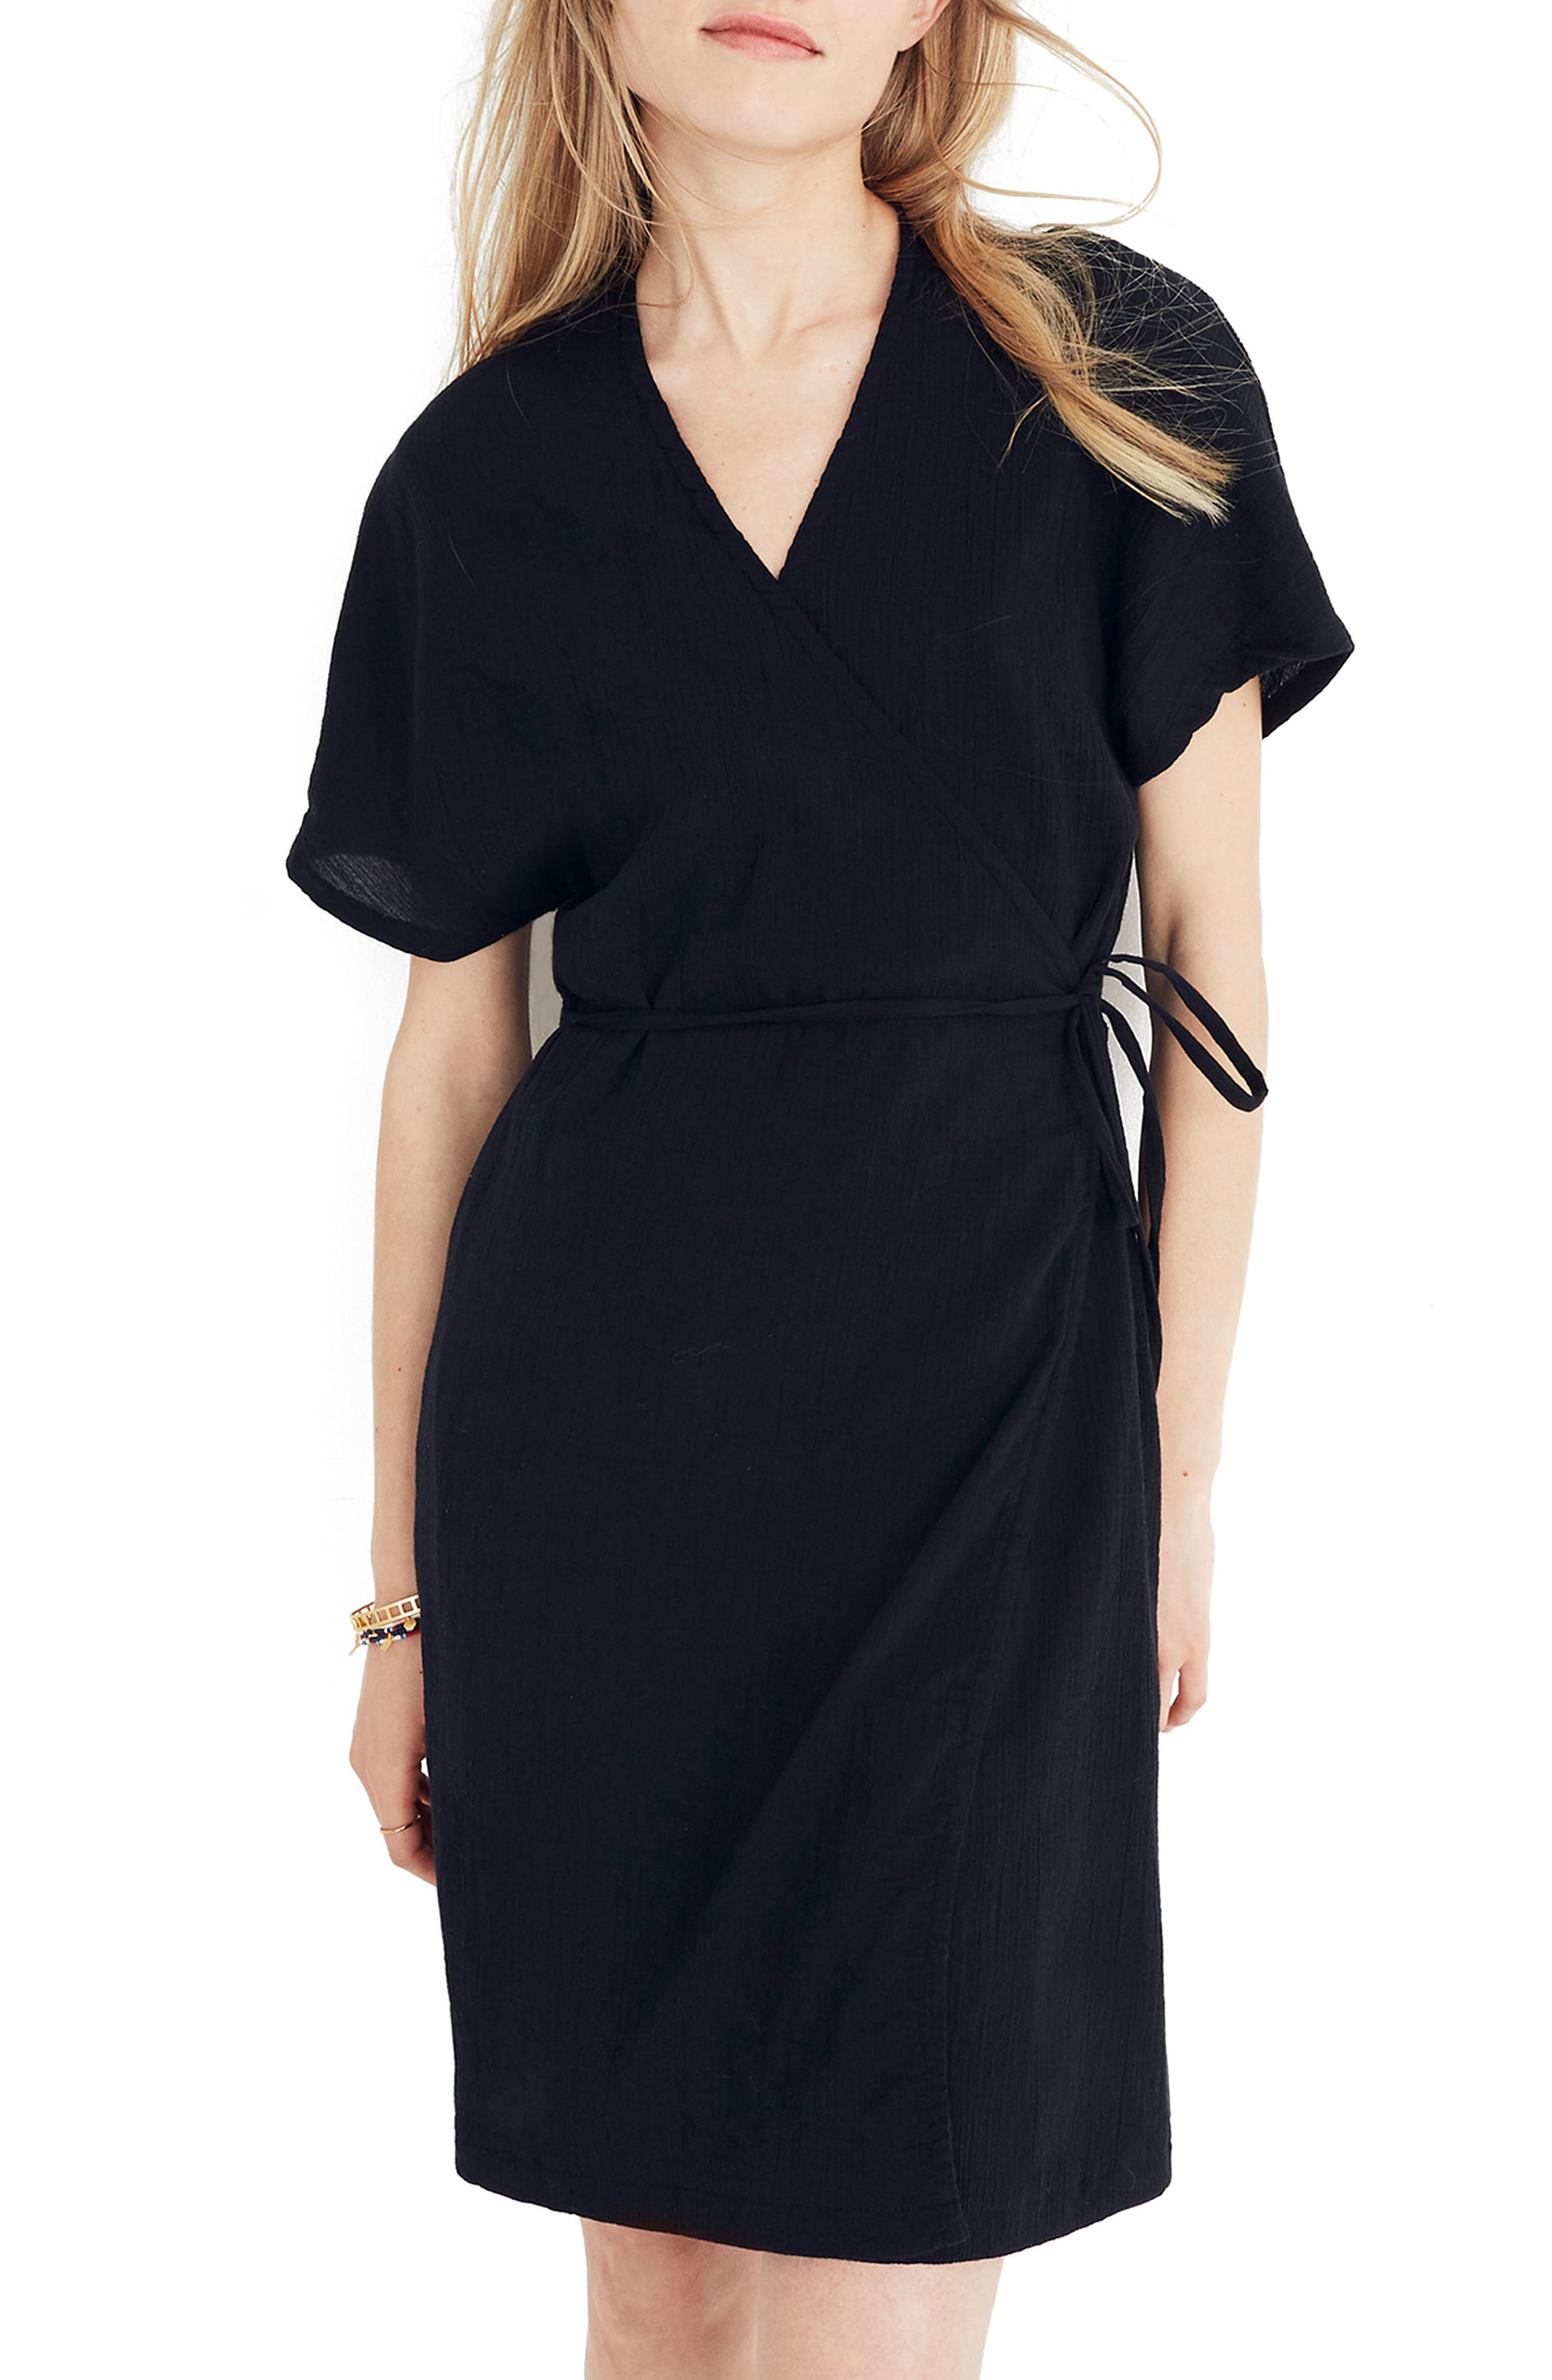 MADEWELL Gauze Wrap Dress, Main, color, 001